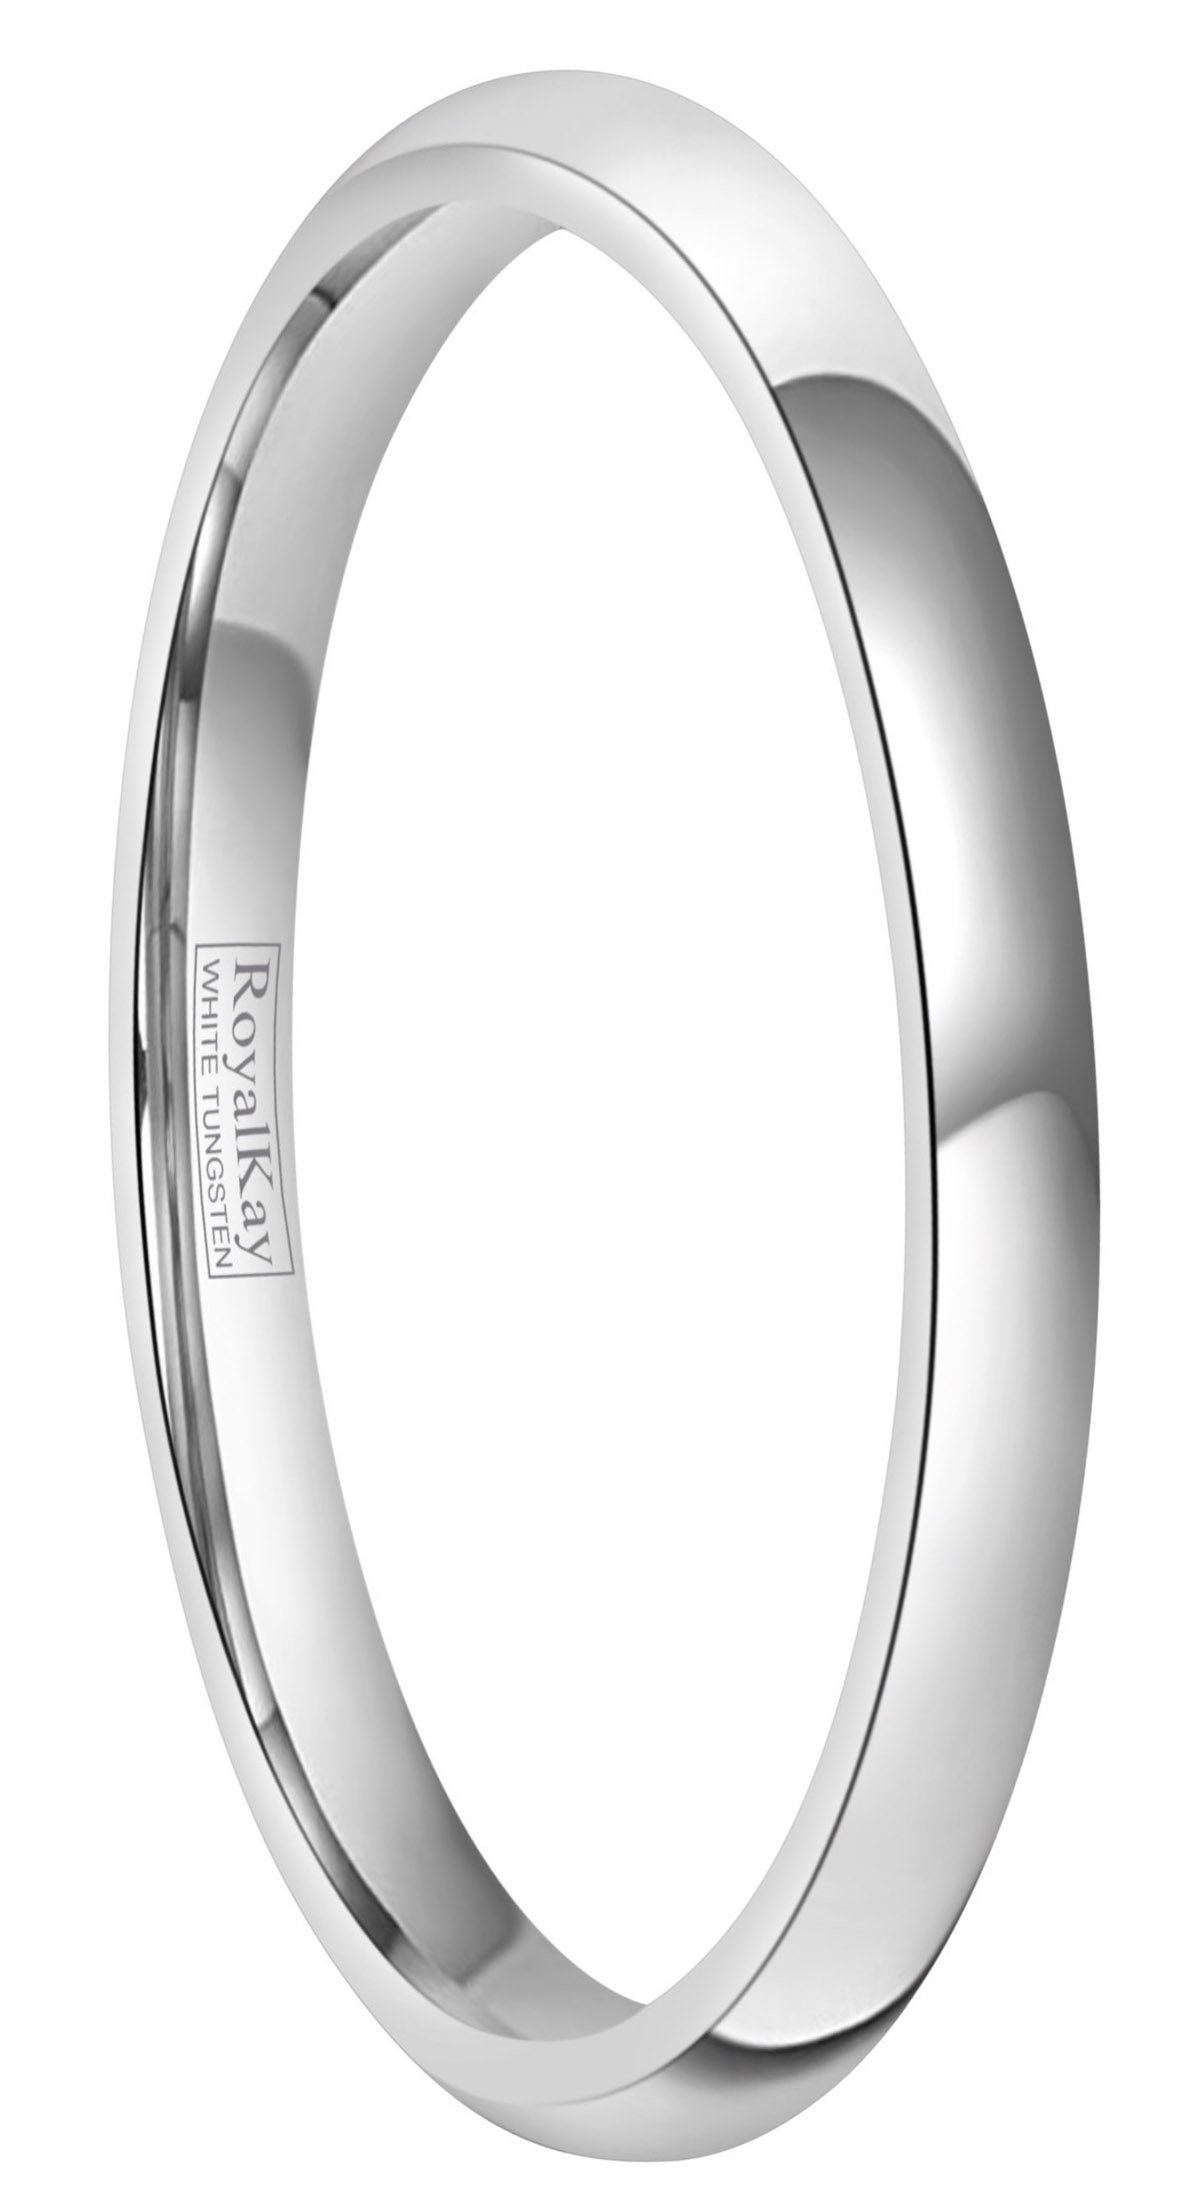 RoyalKay 2mm 4mm 6mm White Tungsten Wedding Band Ring Men Women Plain Dome High Polished Comfort Fit Size 3 To 17 (2mm,6)